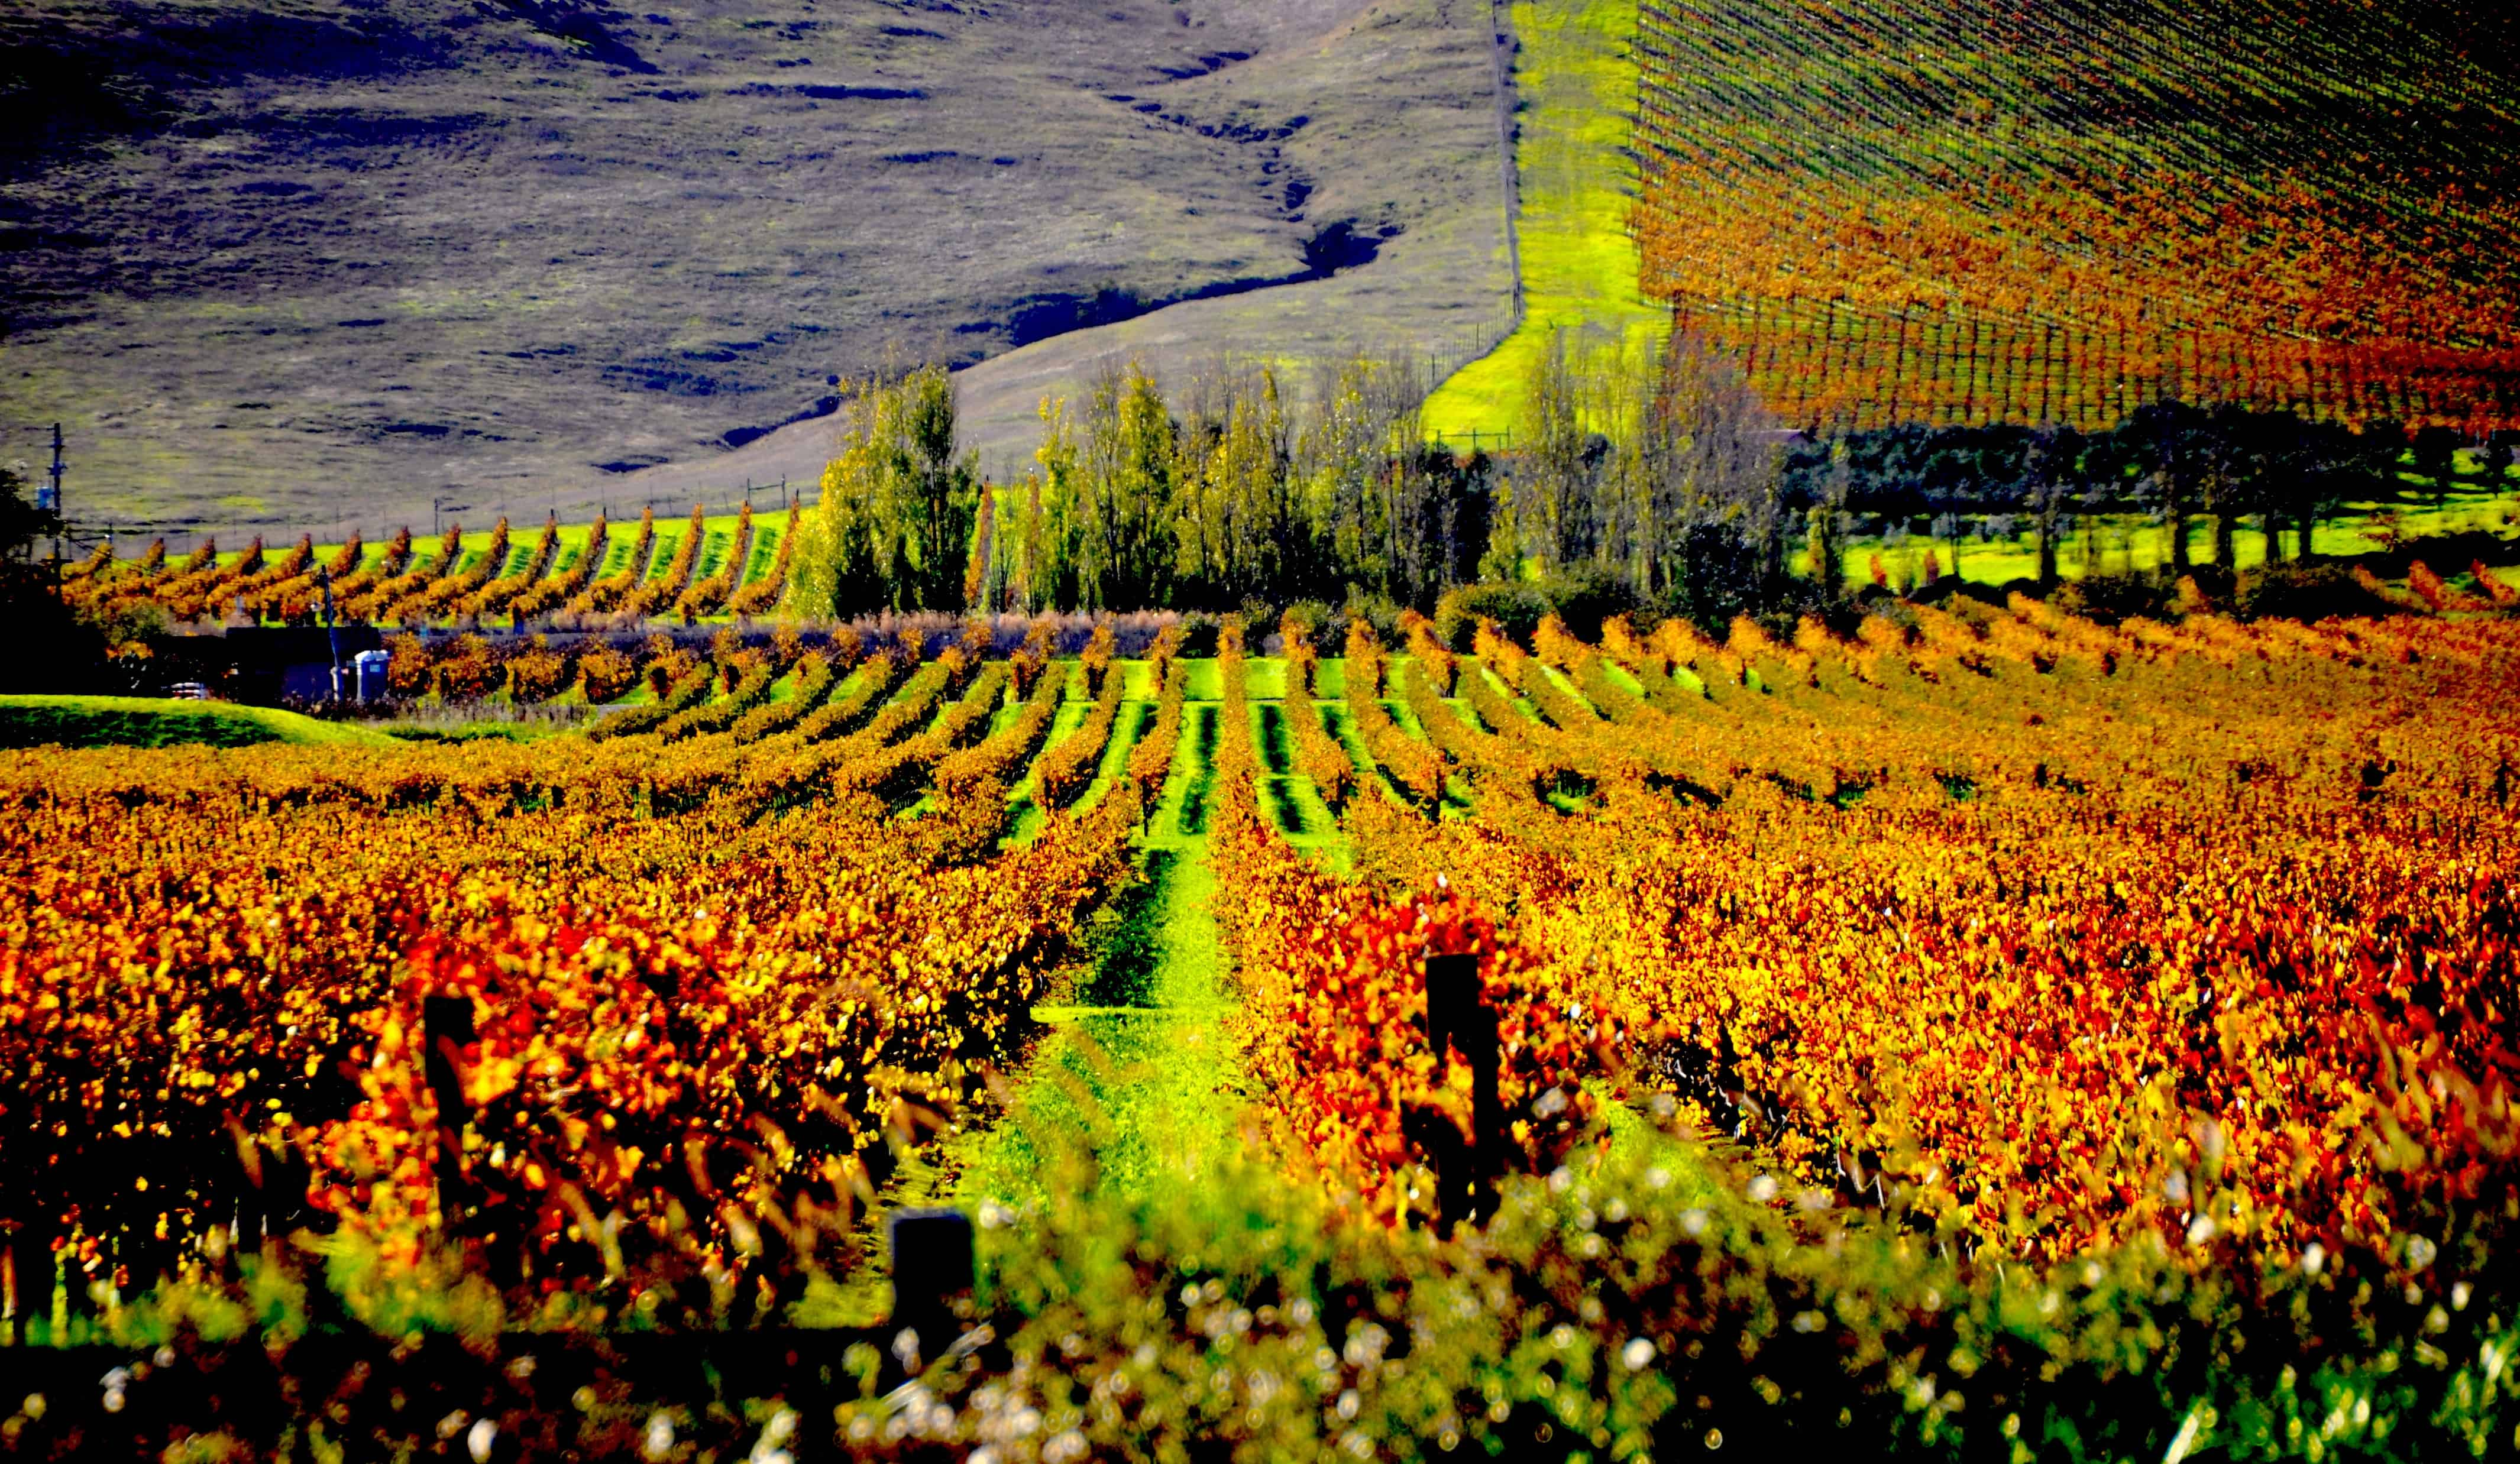 One of the most famous Sonoma wine appellations is Los Carneros